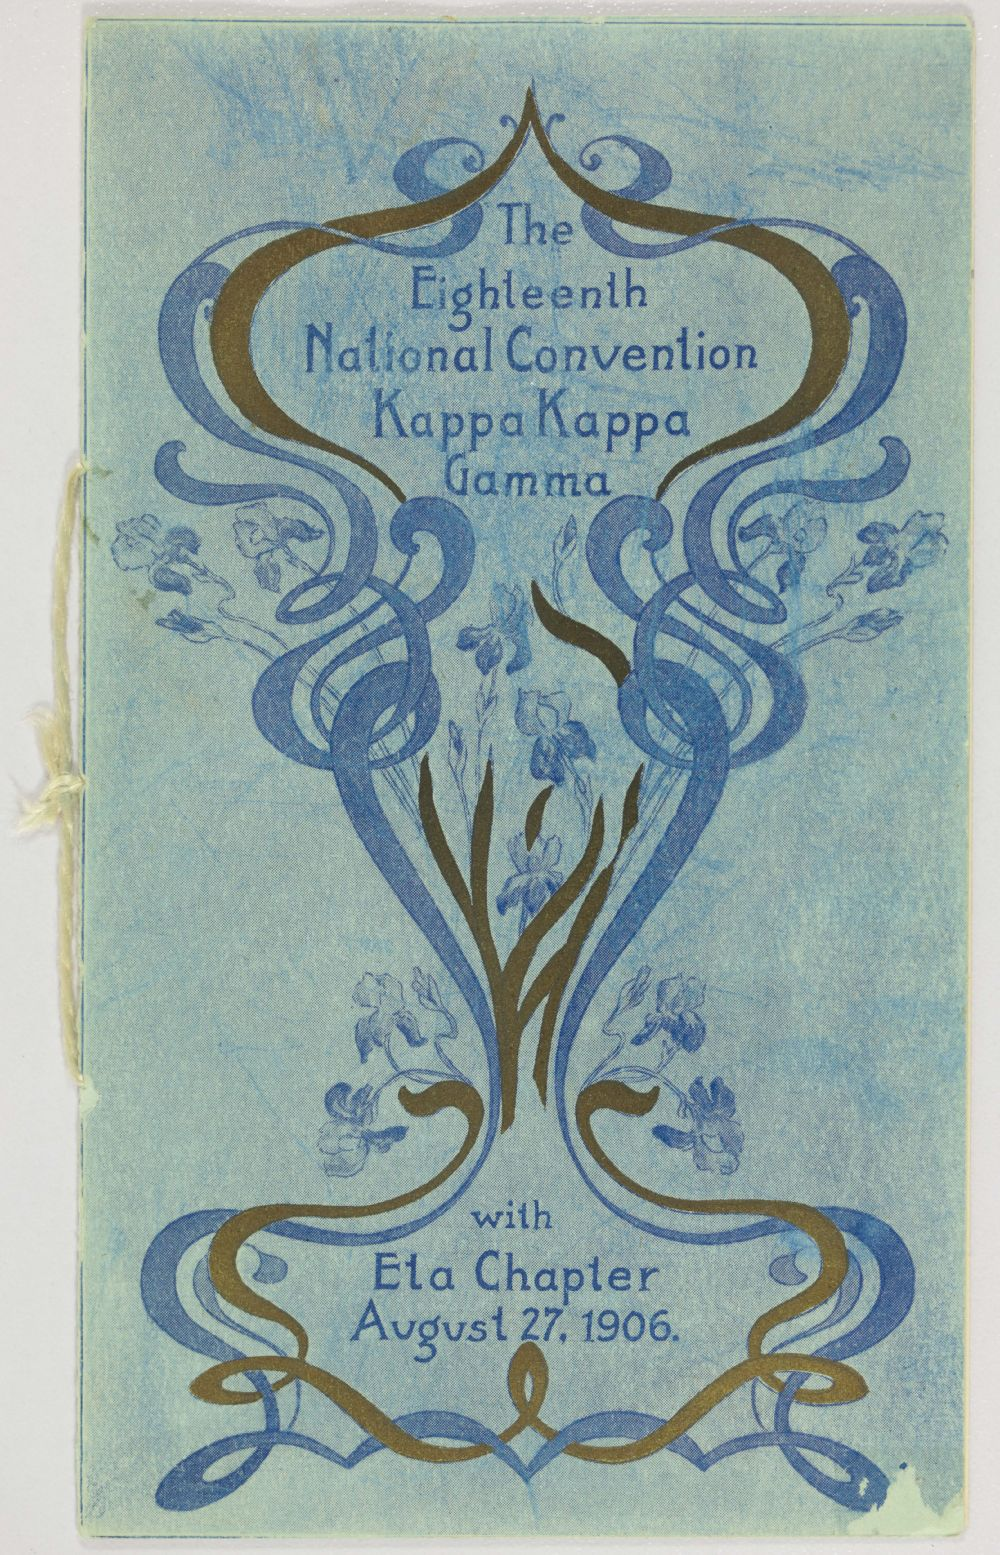 Image, 1906 National Convention